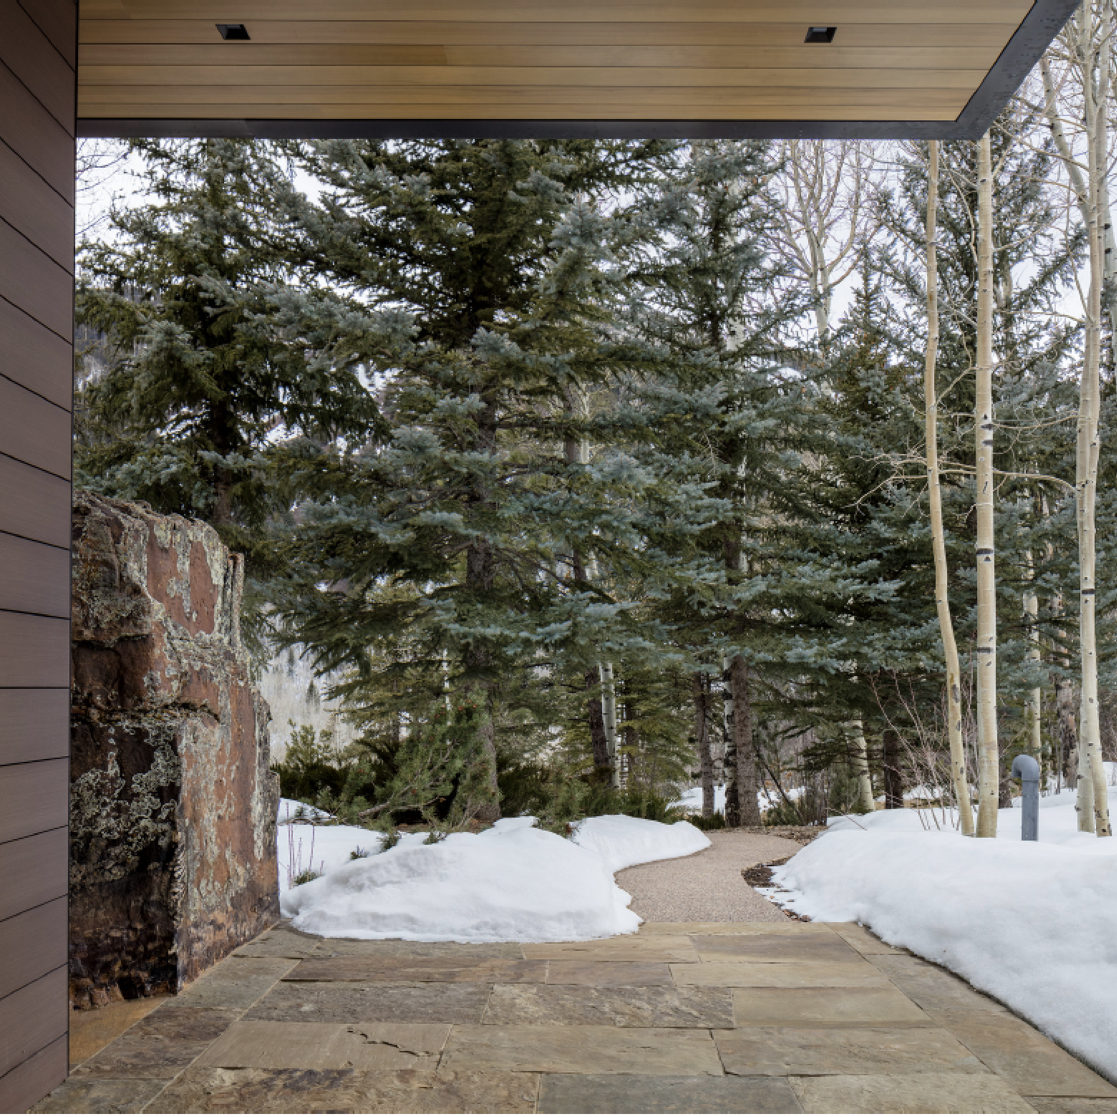 Aspen Custom Landscape Design Project with forest restoration and a boulder rock feature for Residential Setting